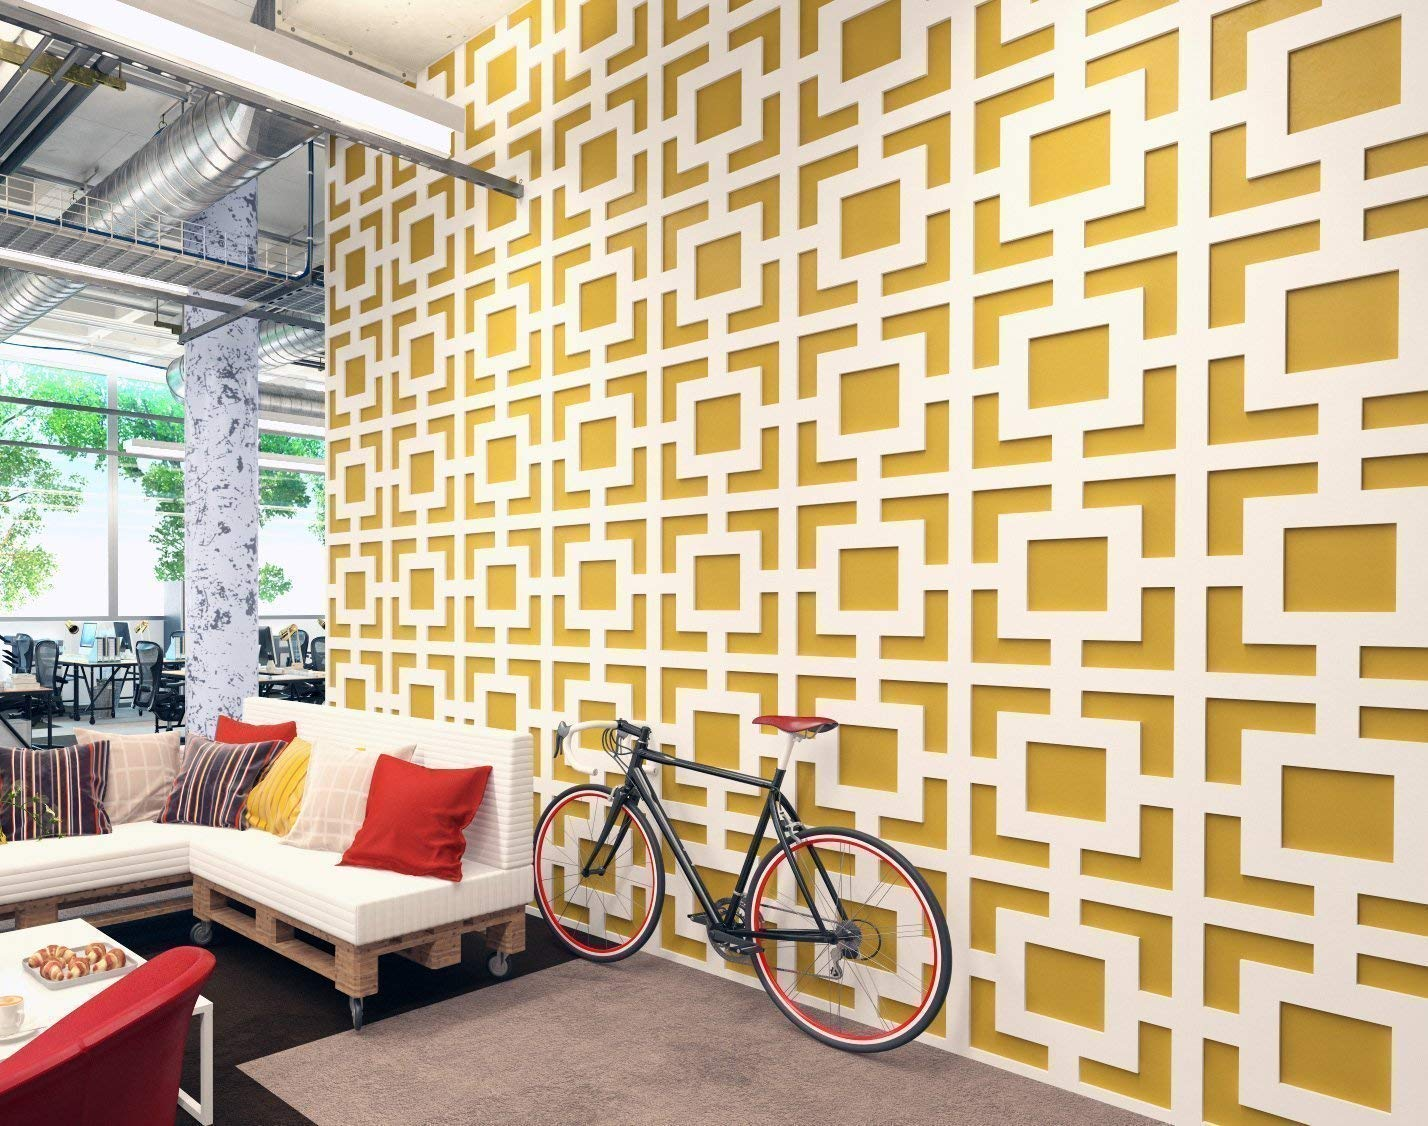 Living Room Designs Indian Style Middle Class, Amazon Com Homeartdecor Mid Century Modern 3d Wall Panels 3d Tiles High Quality Polyvinyl Chloride Office Decoration Home Decoration Easy To Apply Fretwork Lattice Handmade